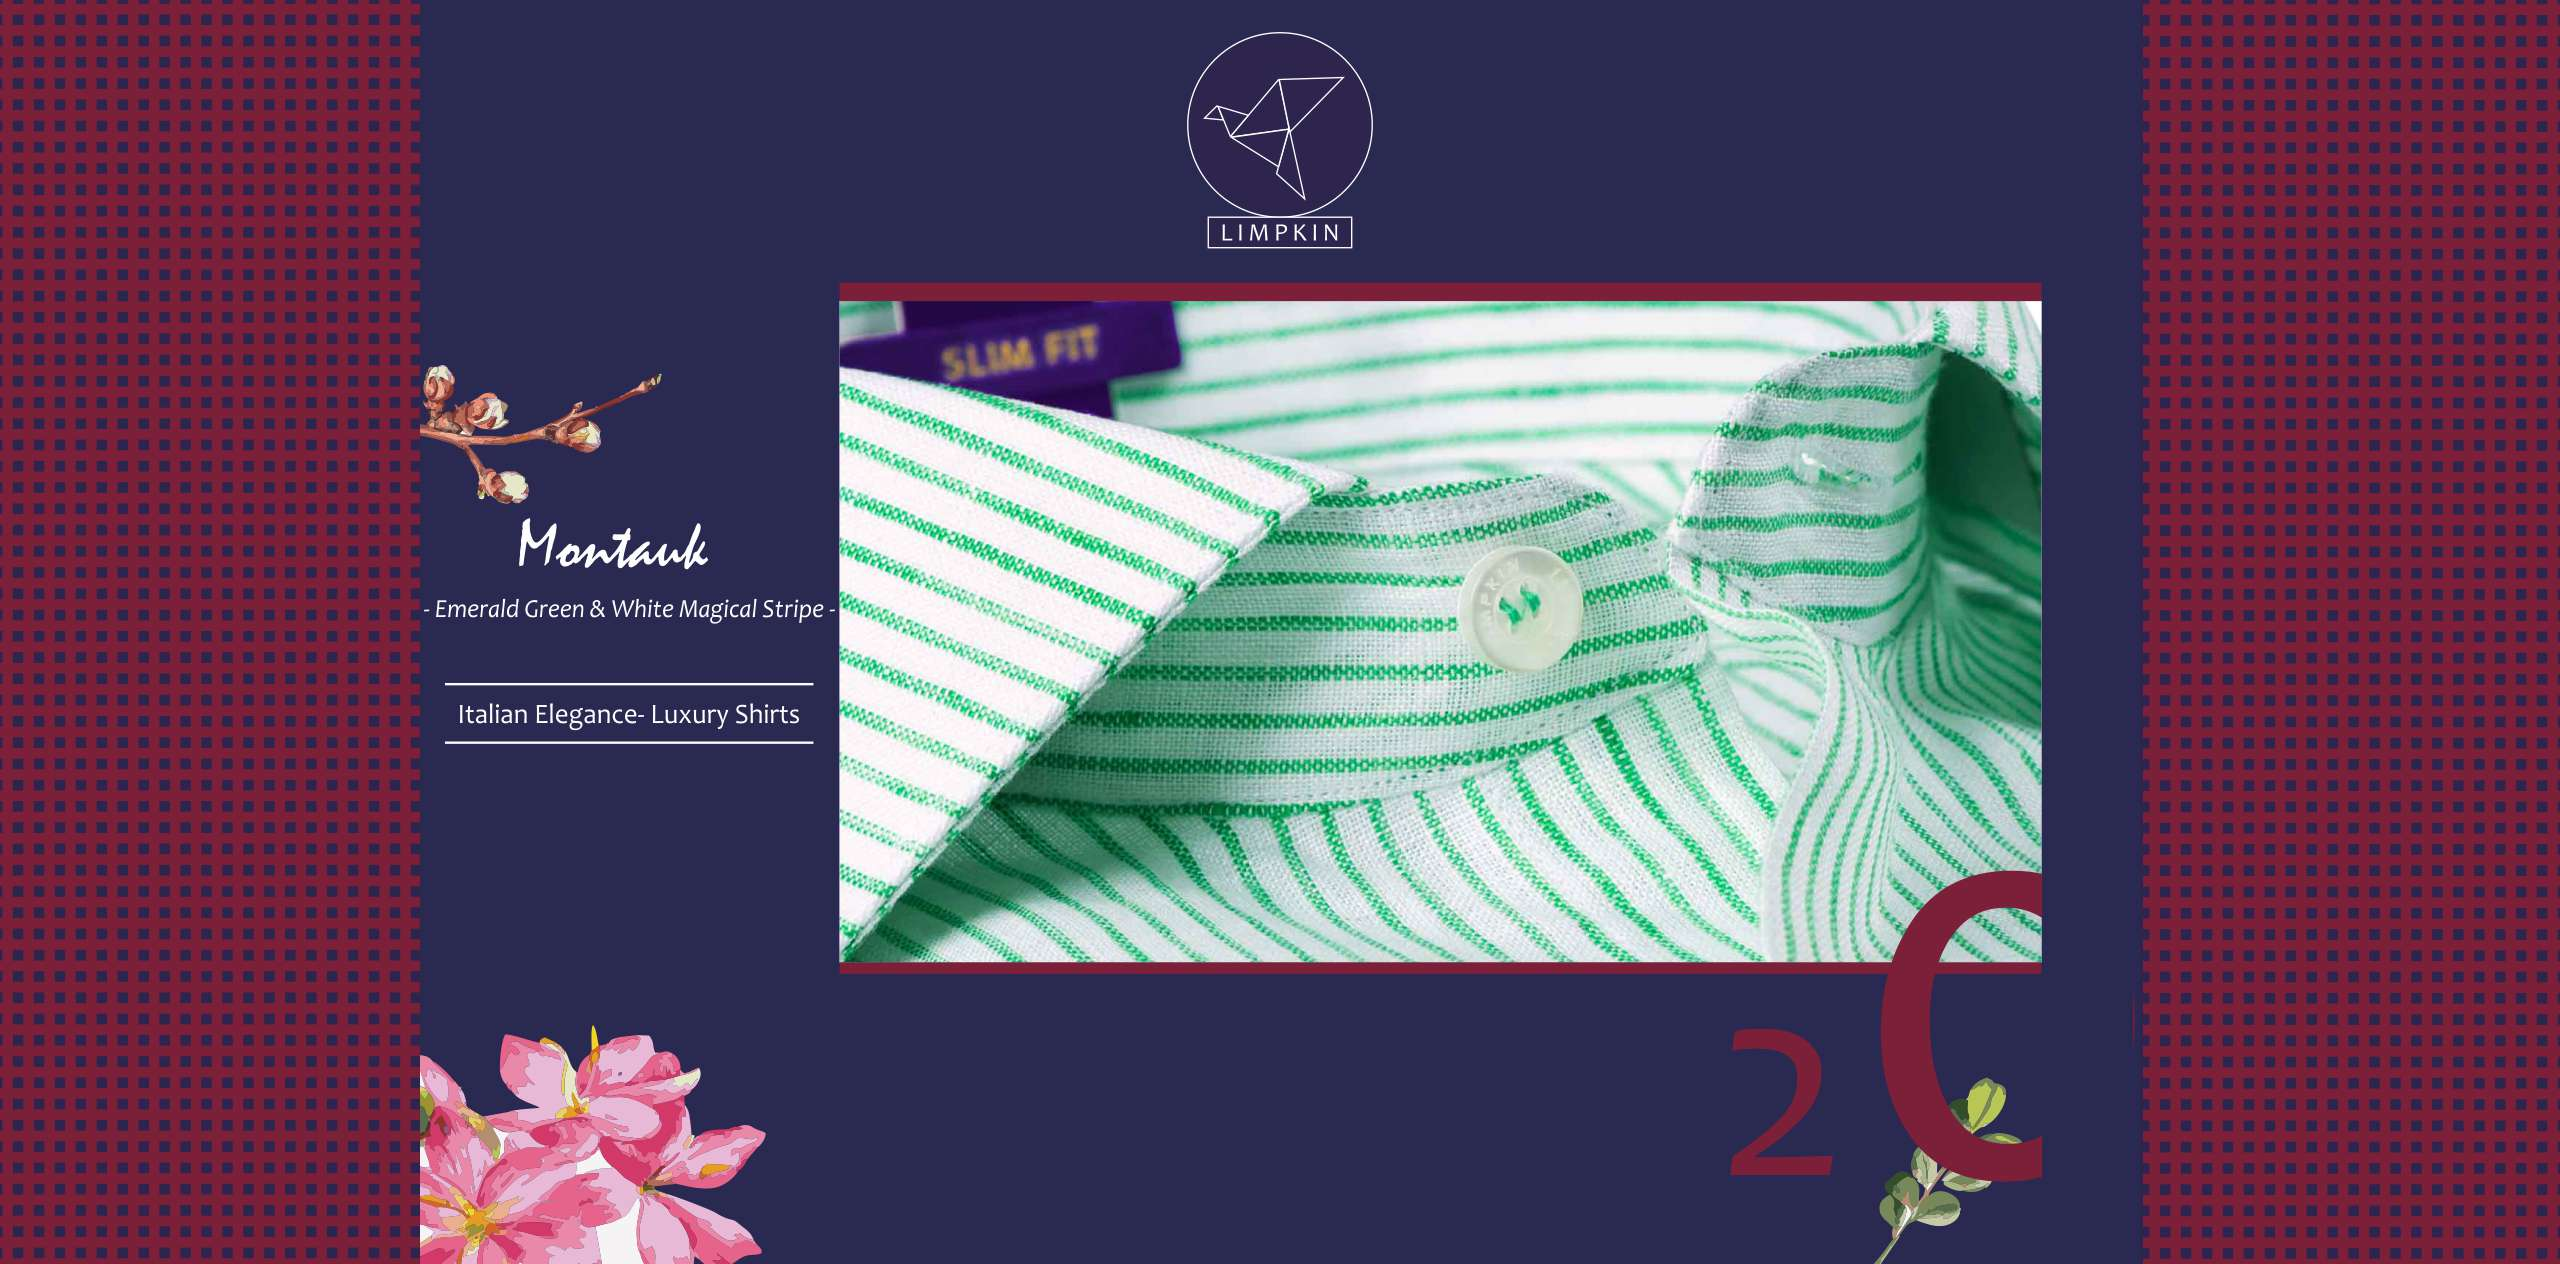 Montauk- Emerald Green & White Magical Stripe- 66's Lea Pure Linen- Delivery from 5th Nov - Banner